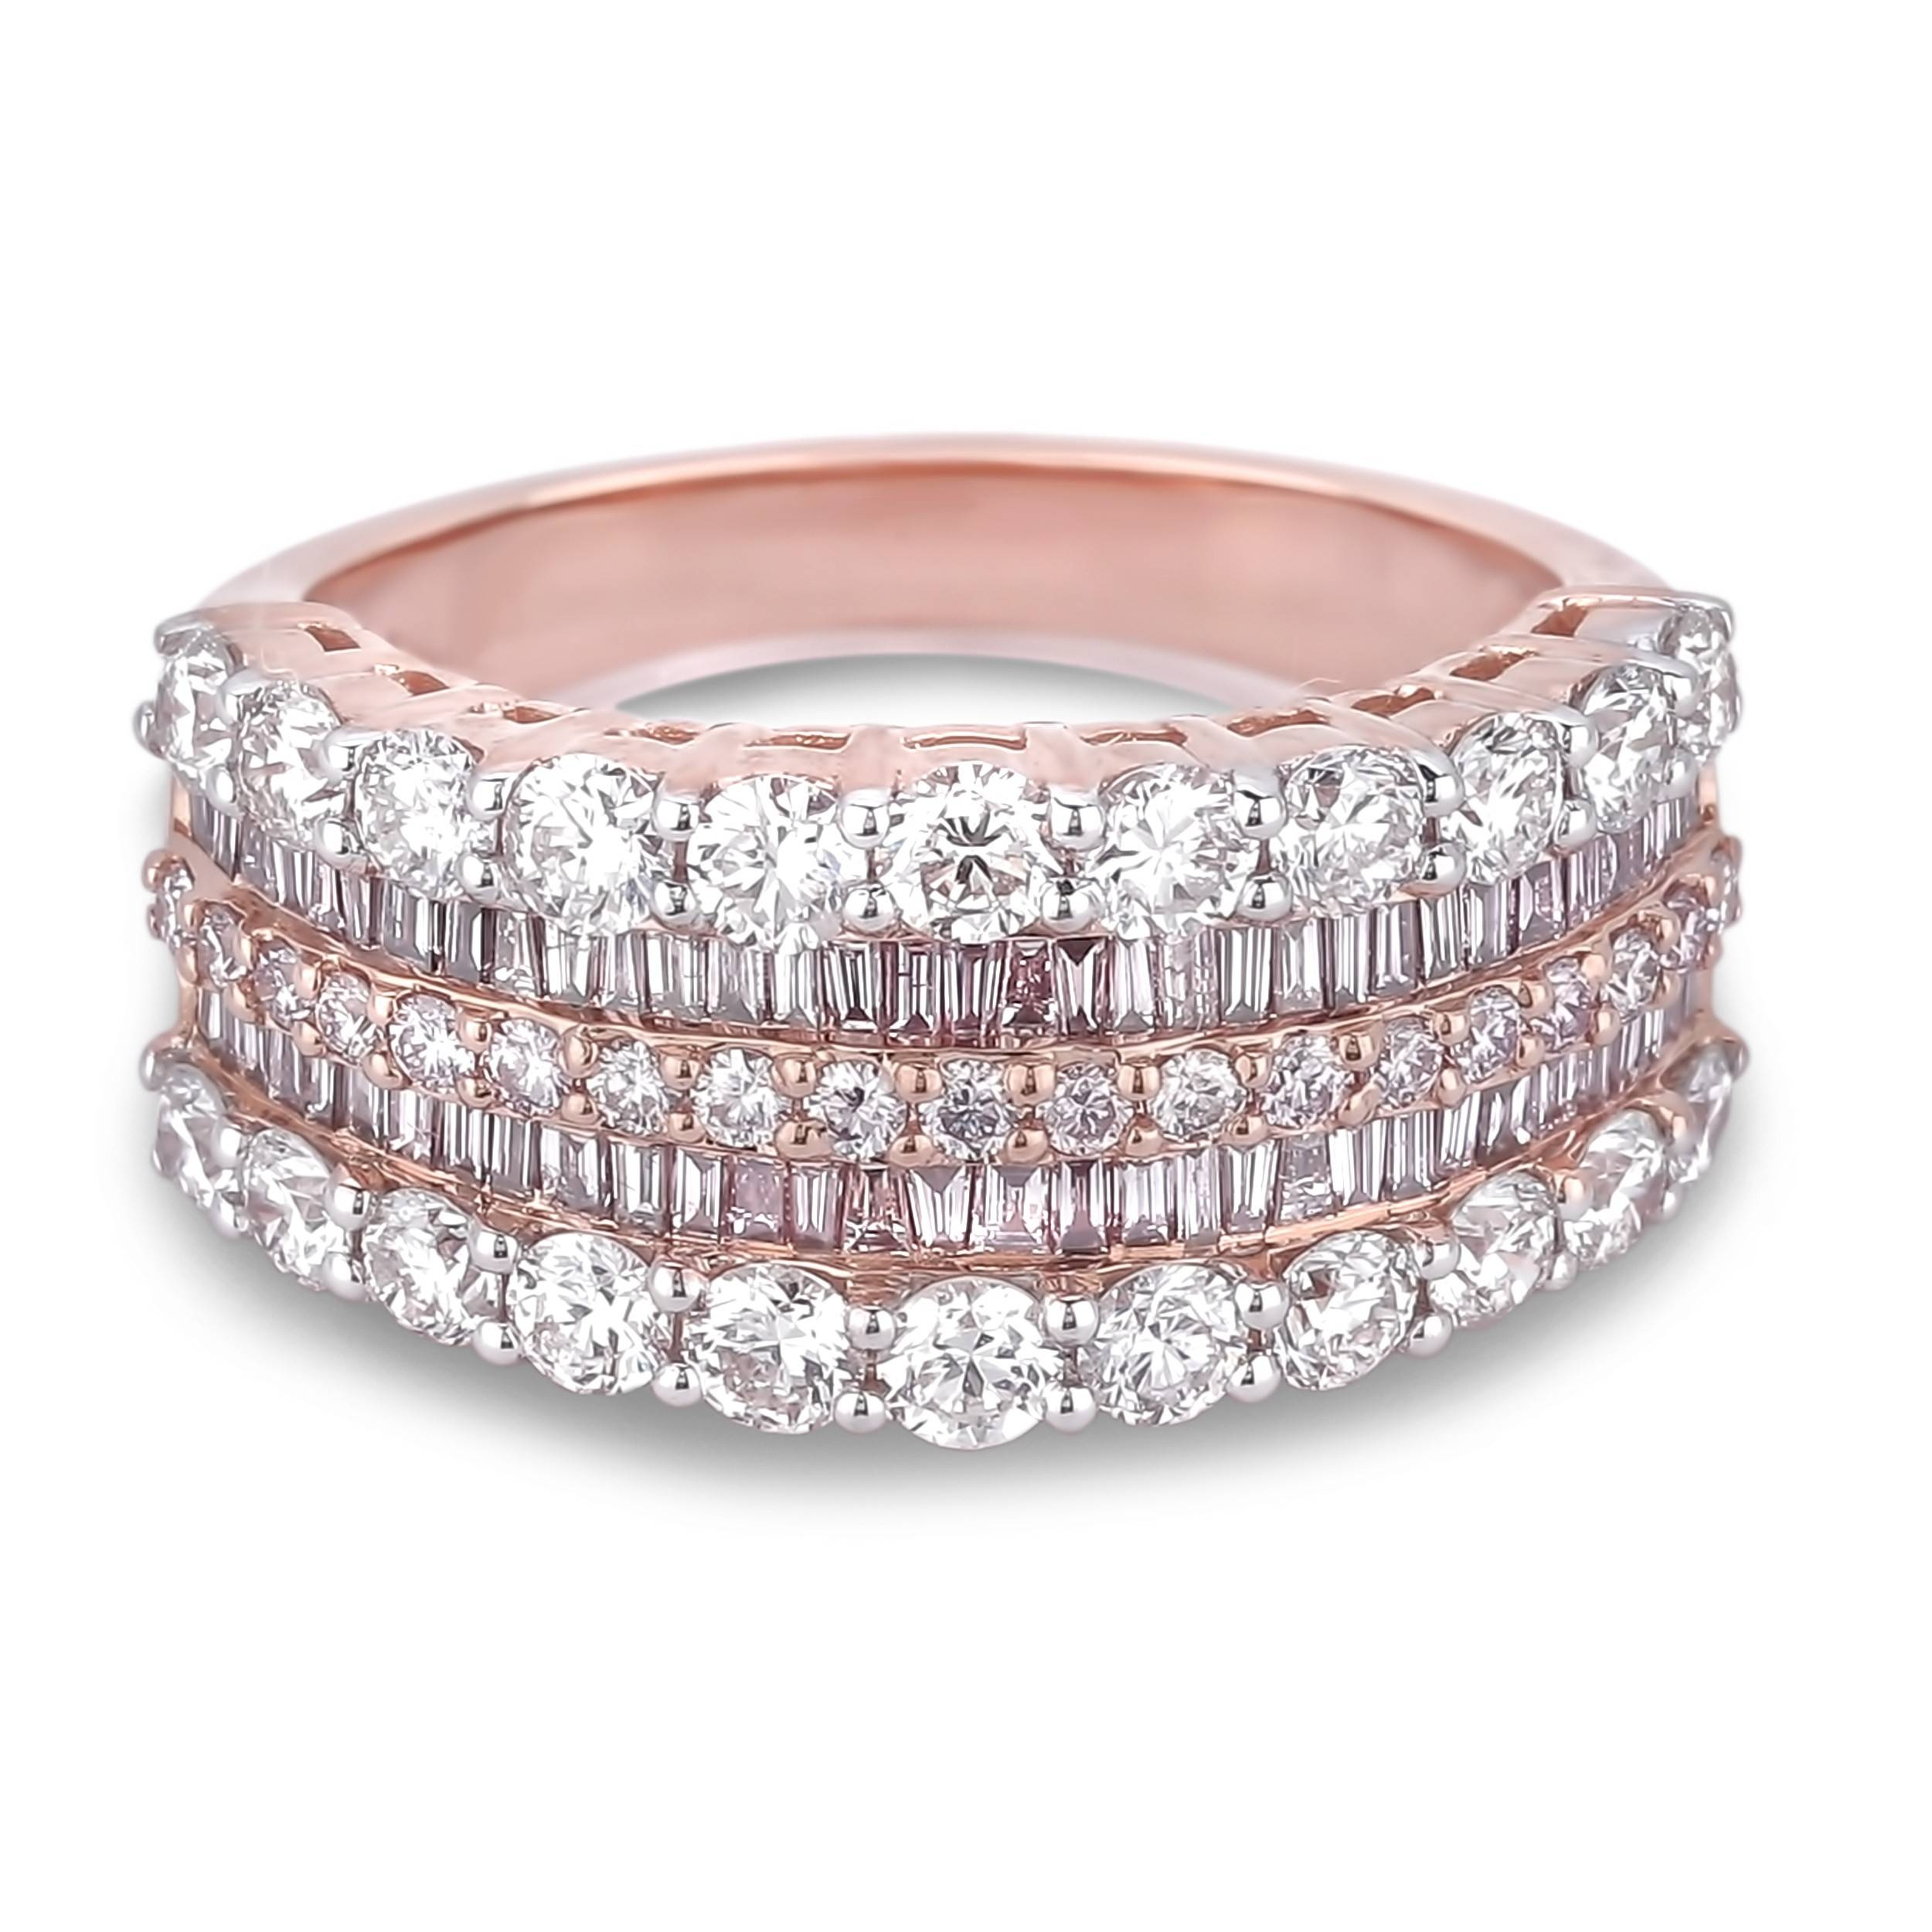 Lugaro | Argyle Pink Diamond Anniversary Ring With Regard To Latest Ladies Anniversary Rings (View 2 of 25)